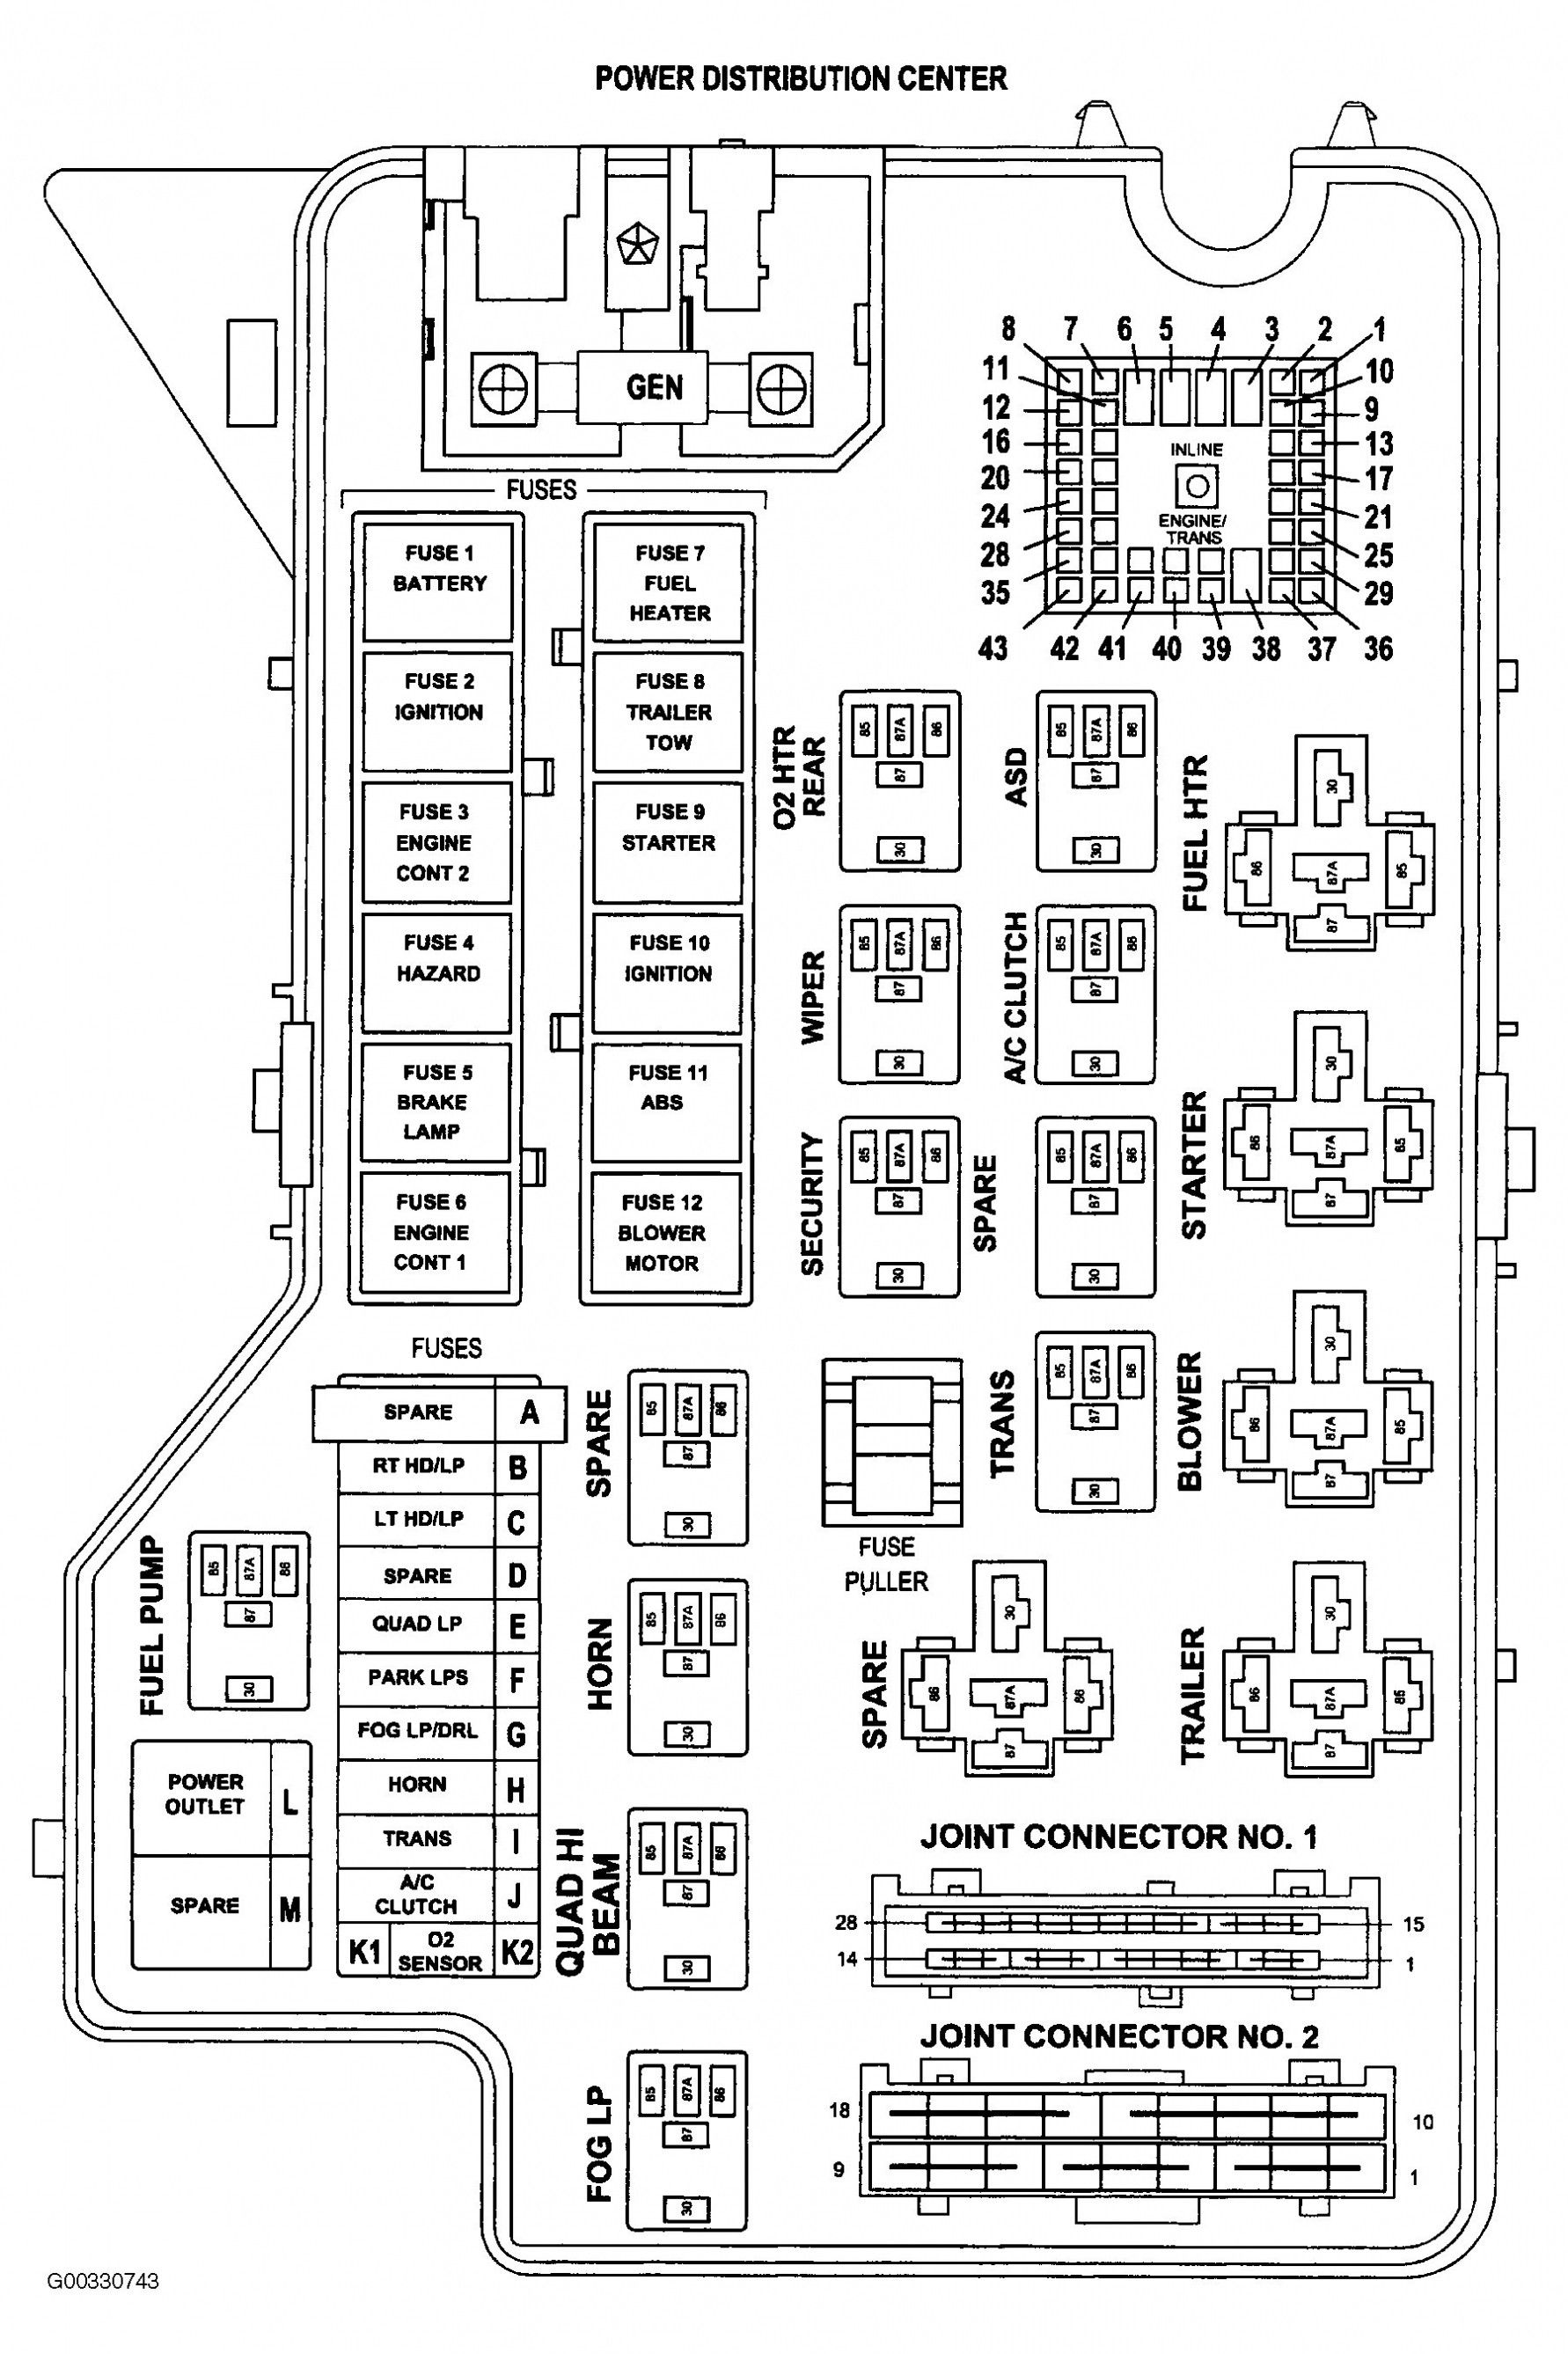 new 2011 dodge ram 1500 radio wiring diagram diagram diagramsample diagramtemplate wiringdiagram [ 1782 x 2675 Pixel ]